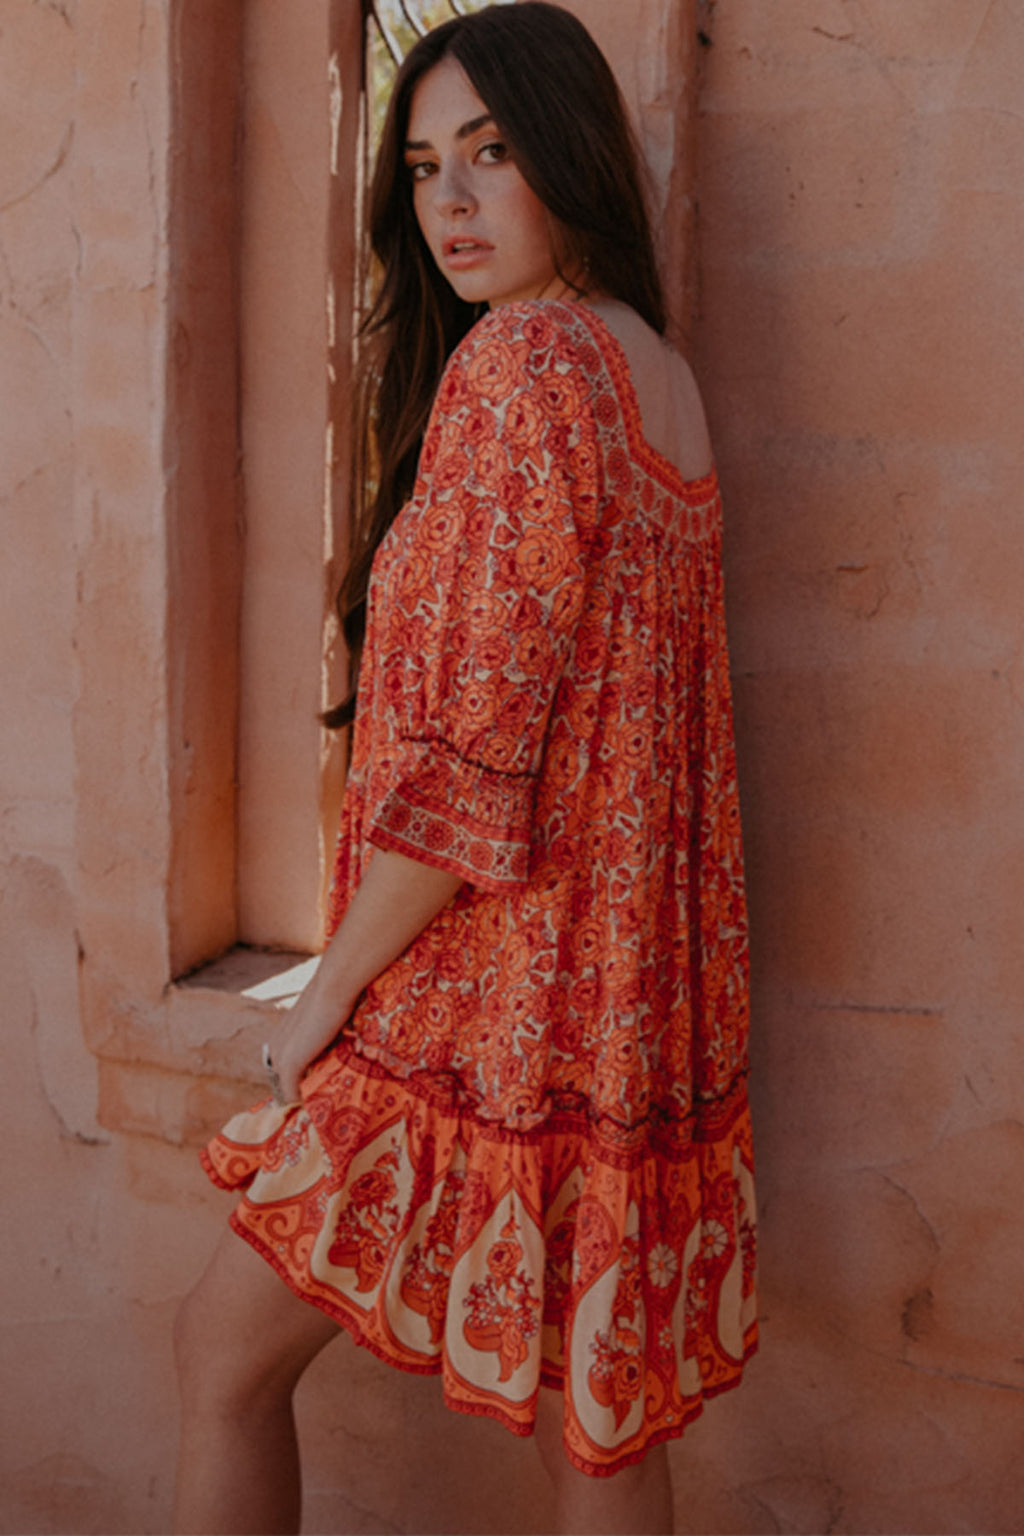 Festival of Roses Mini Dress - Spice - The Bohemian Corner